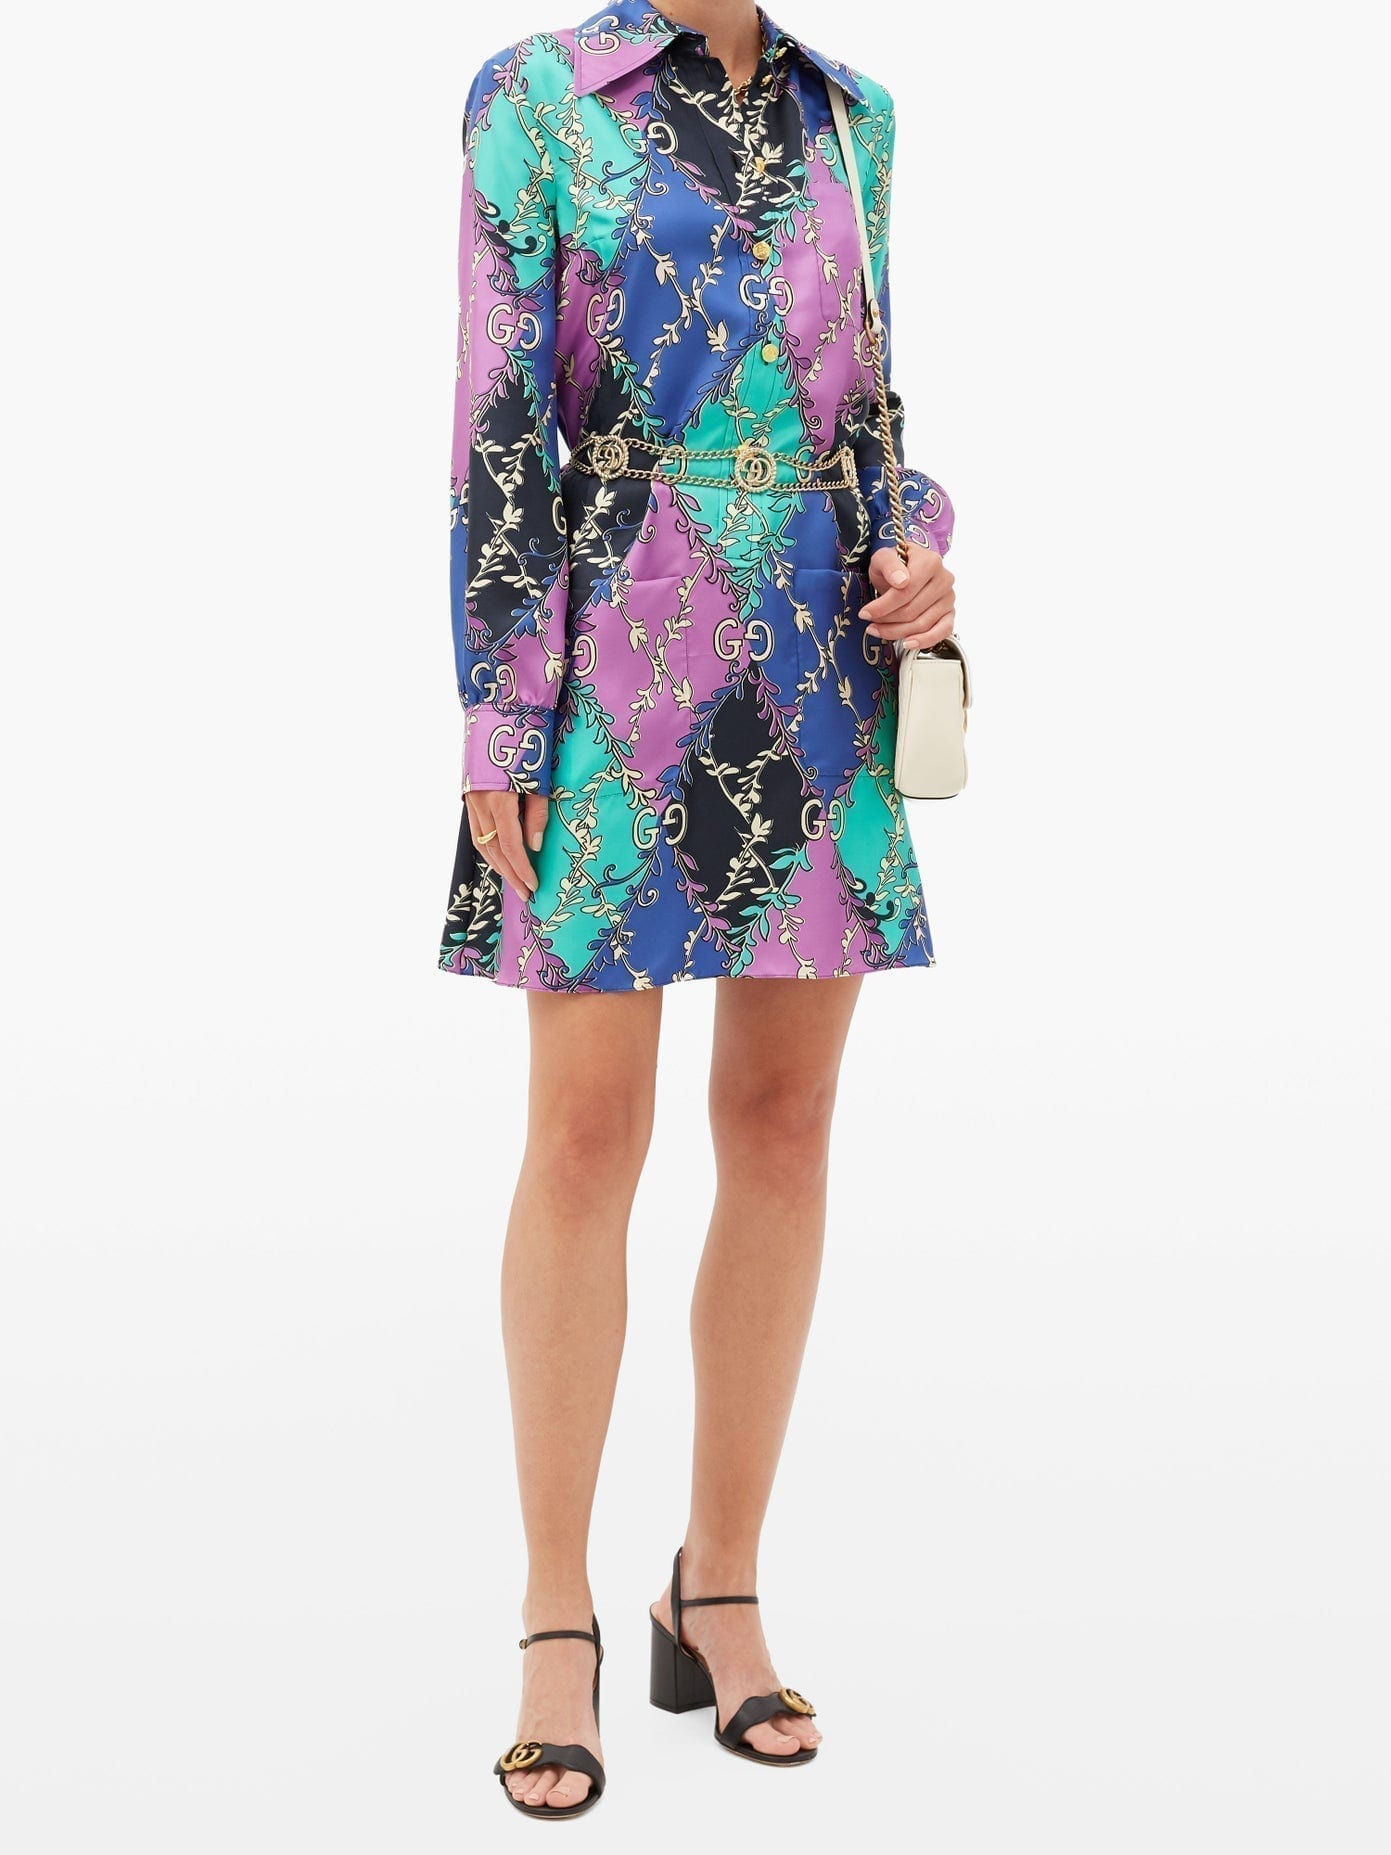 GUCCI GG Diamond-Print Silk-Twill Mini Dress